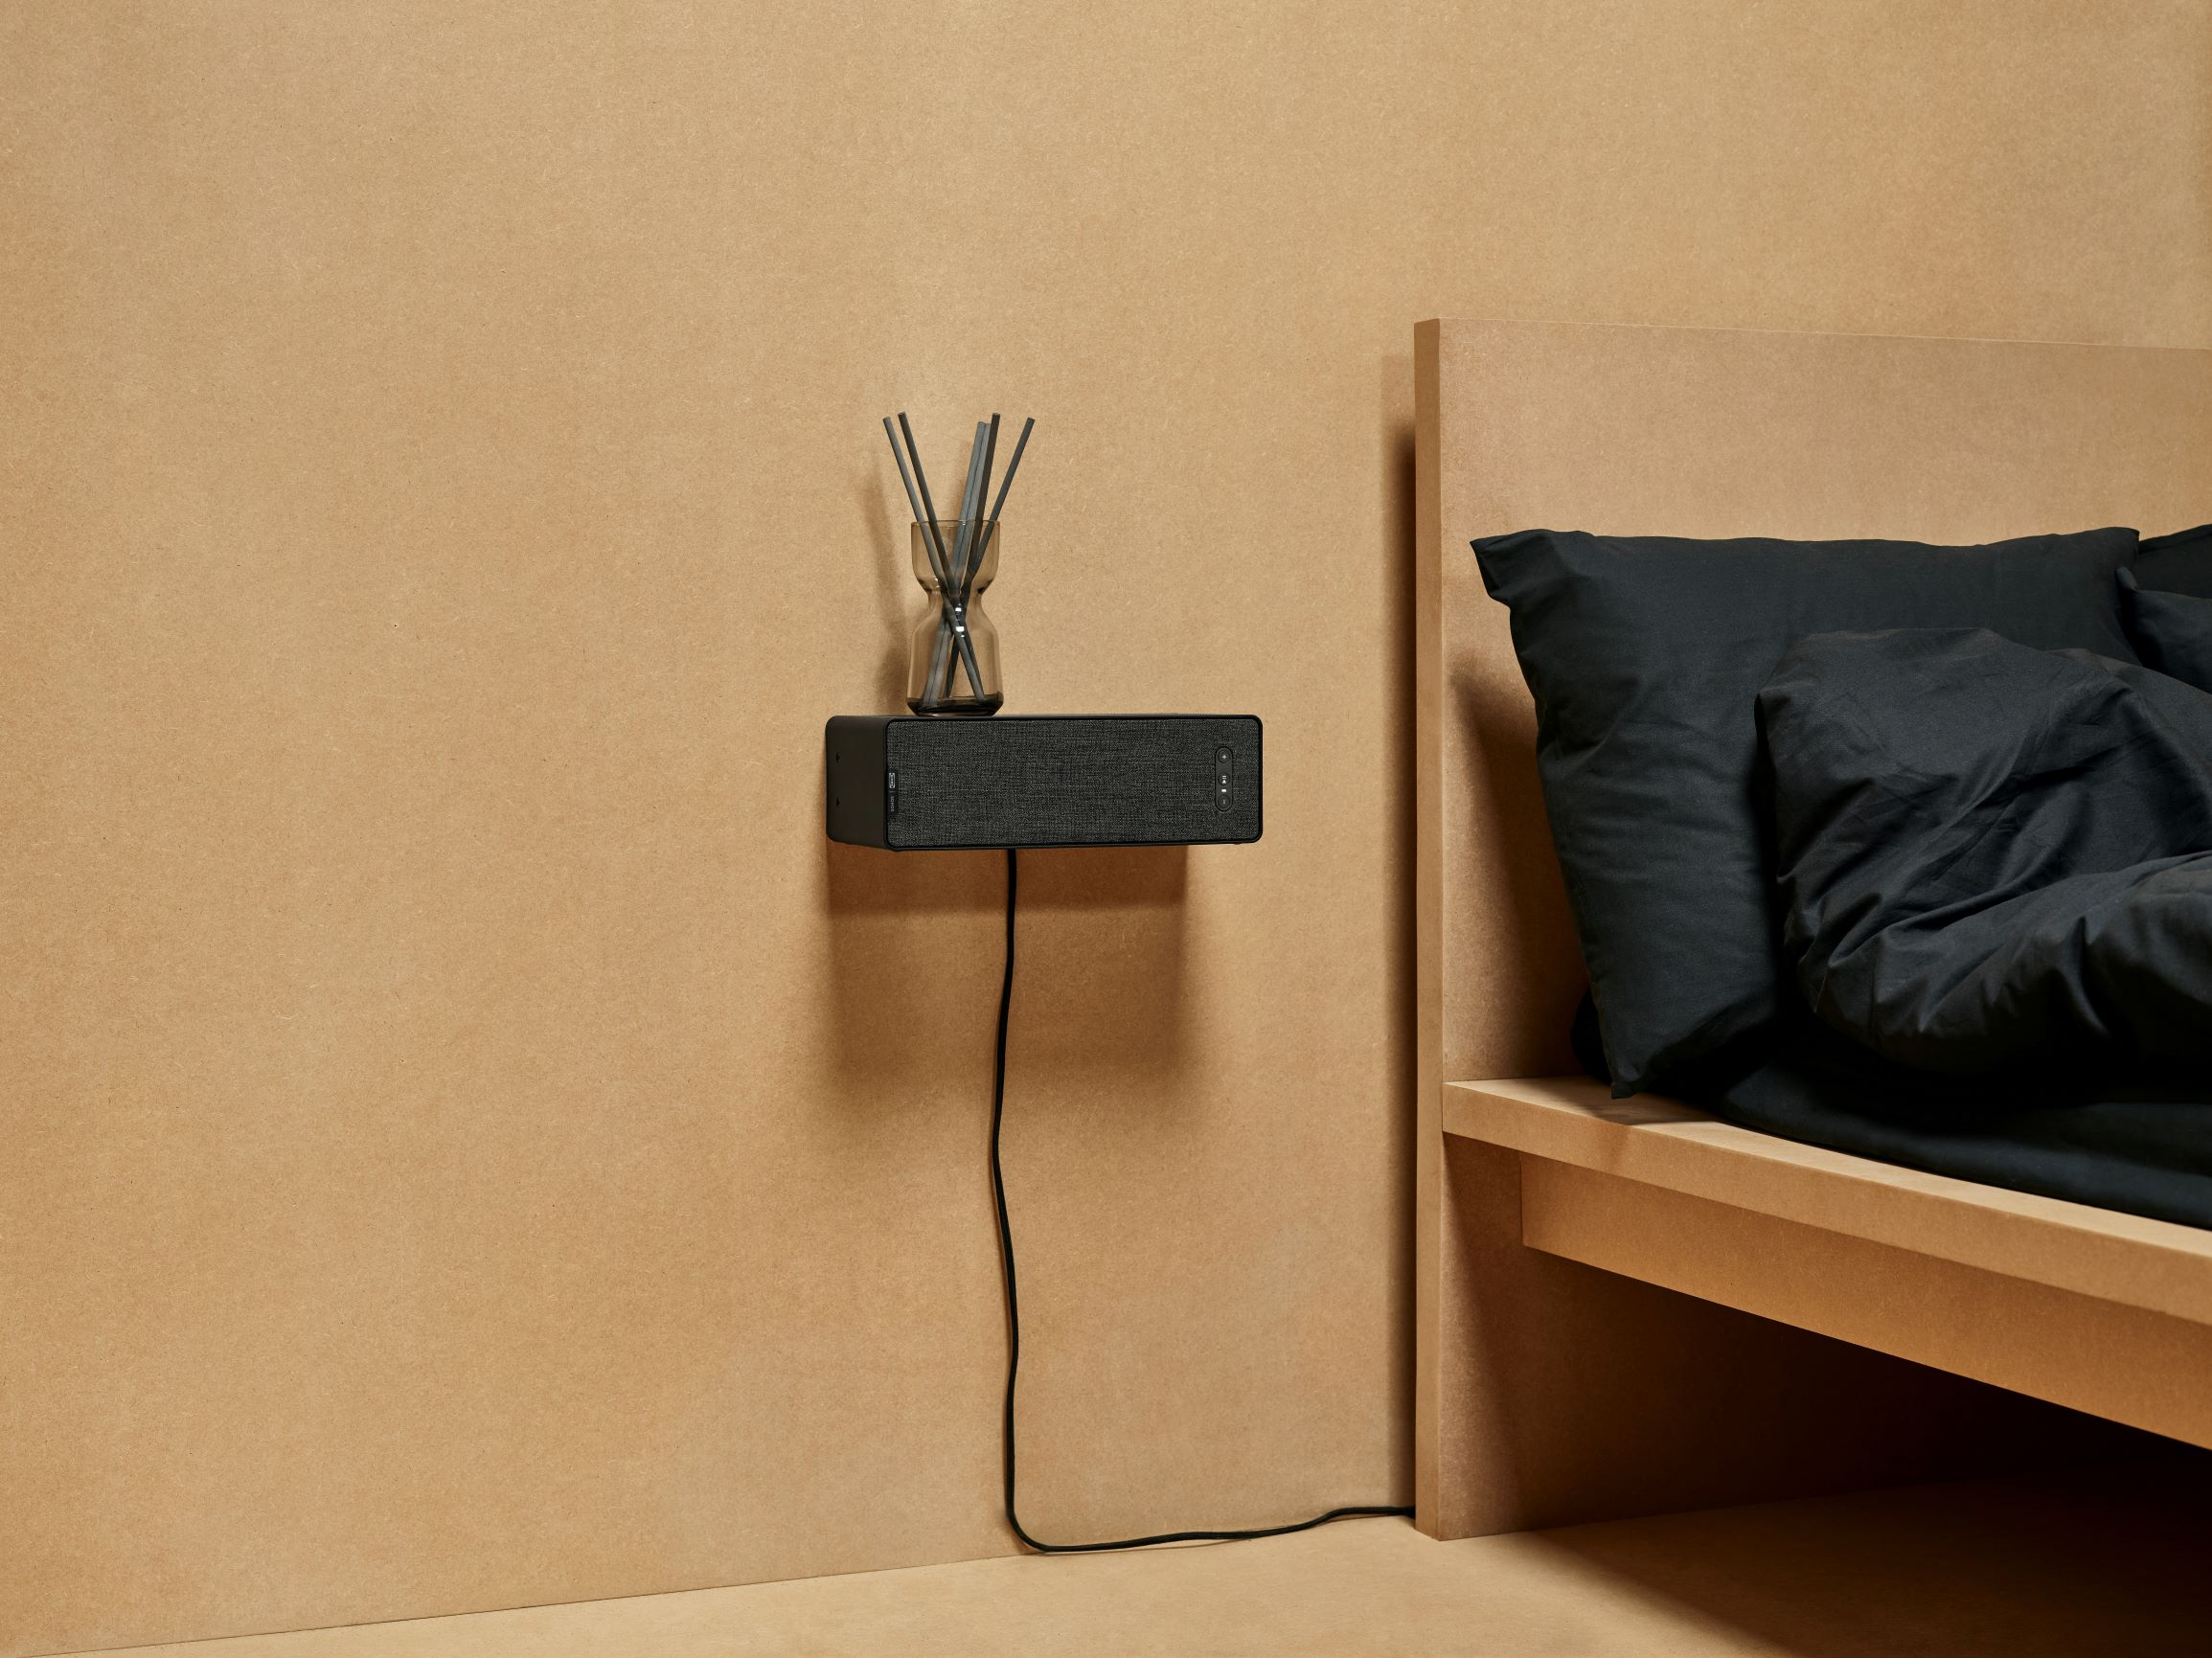 Arte Replay Mustang Sonos Partners With Ikea And Announces 99 Speaker Digital Home